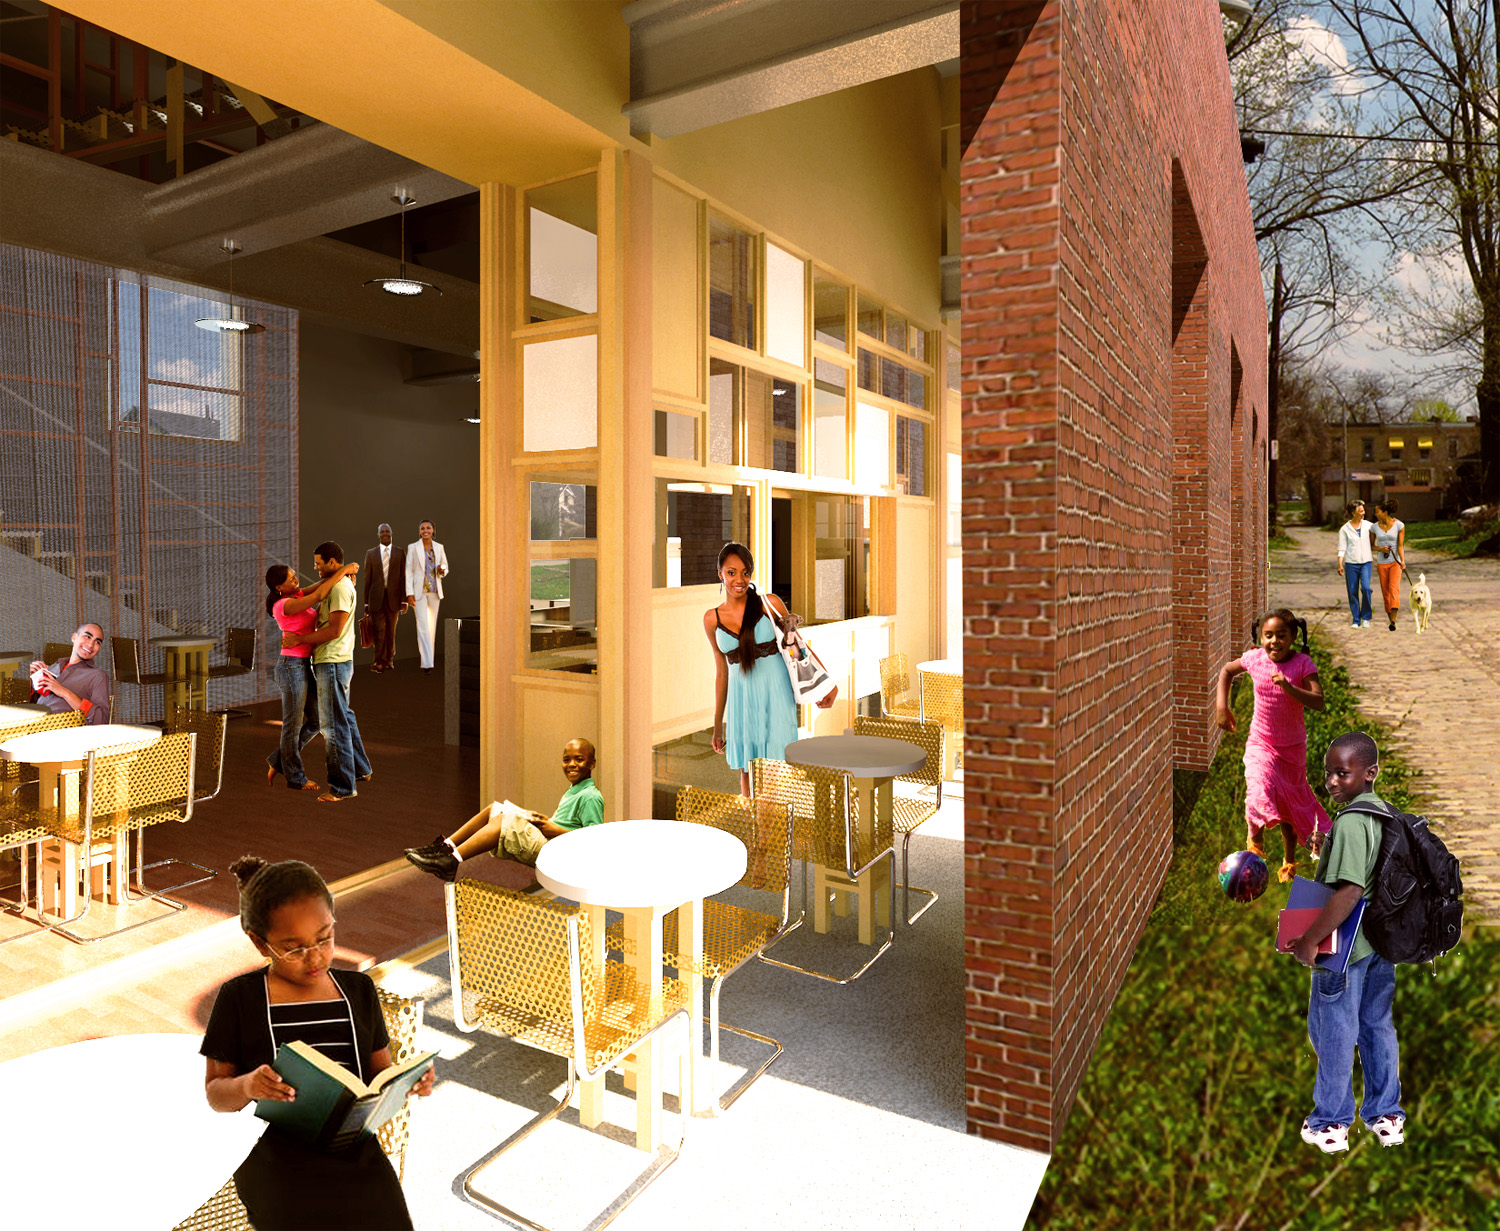 Render of cafe interior, southern-facing window wall, and covered outdoor arcade.